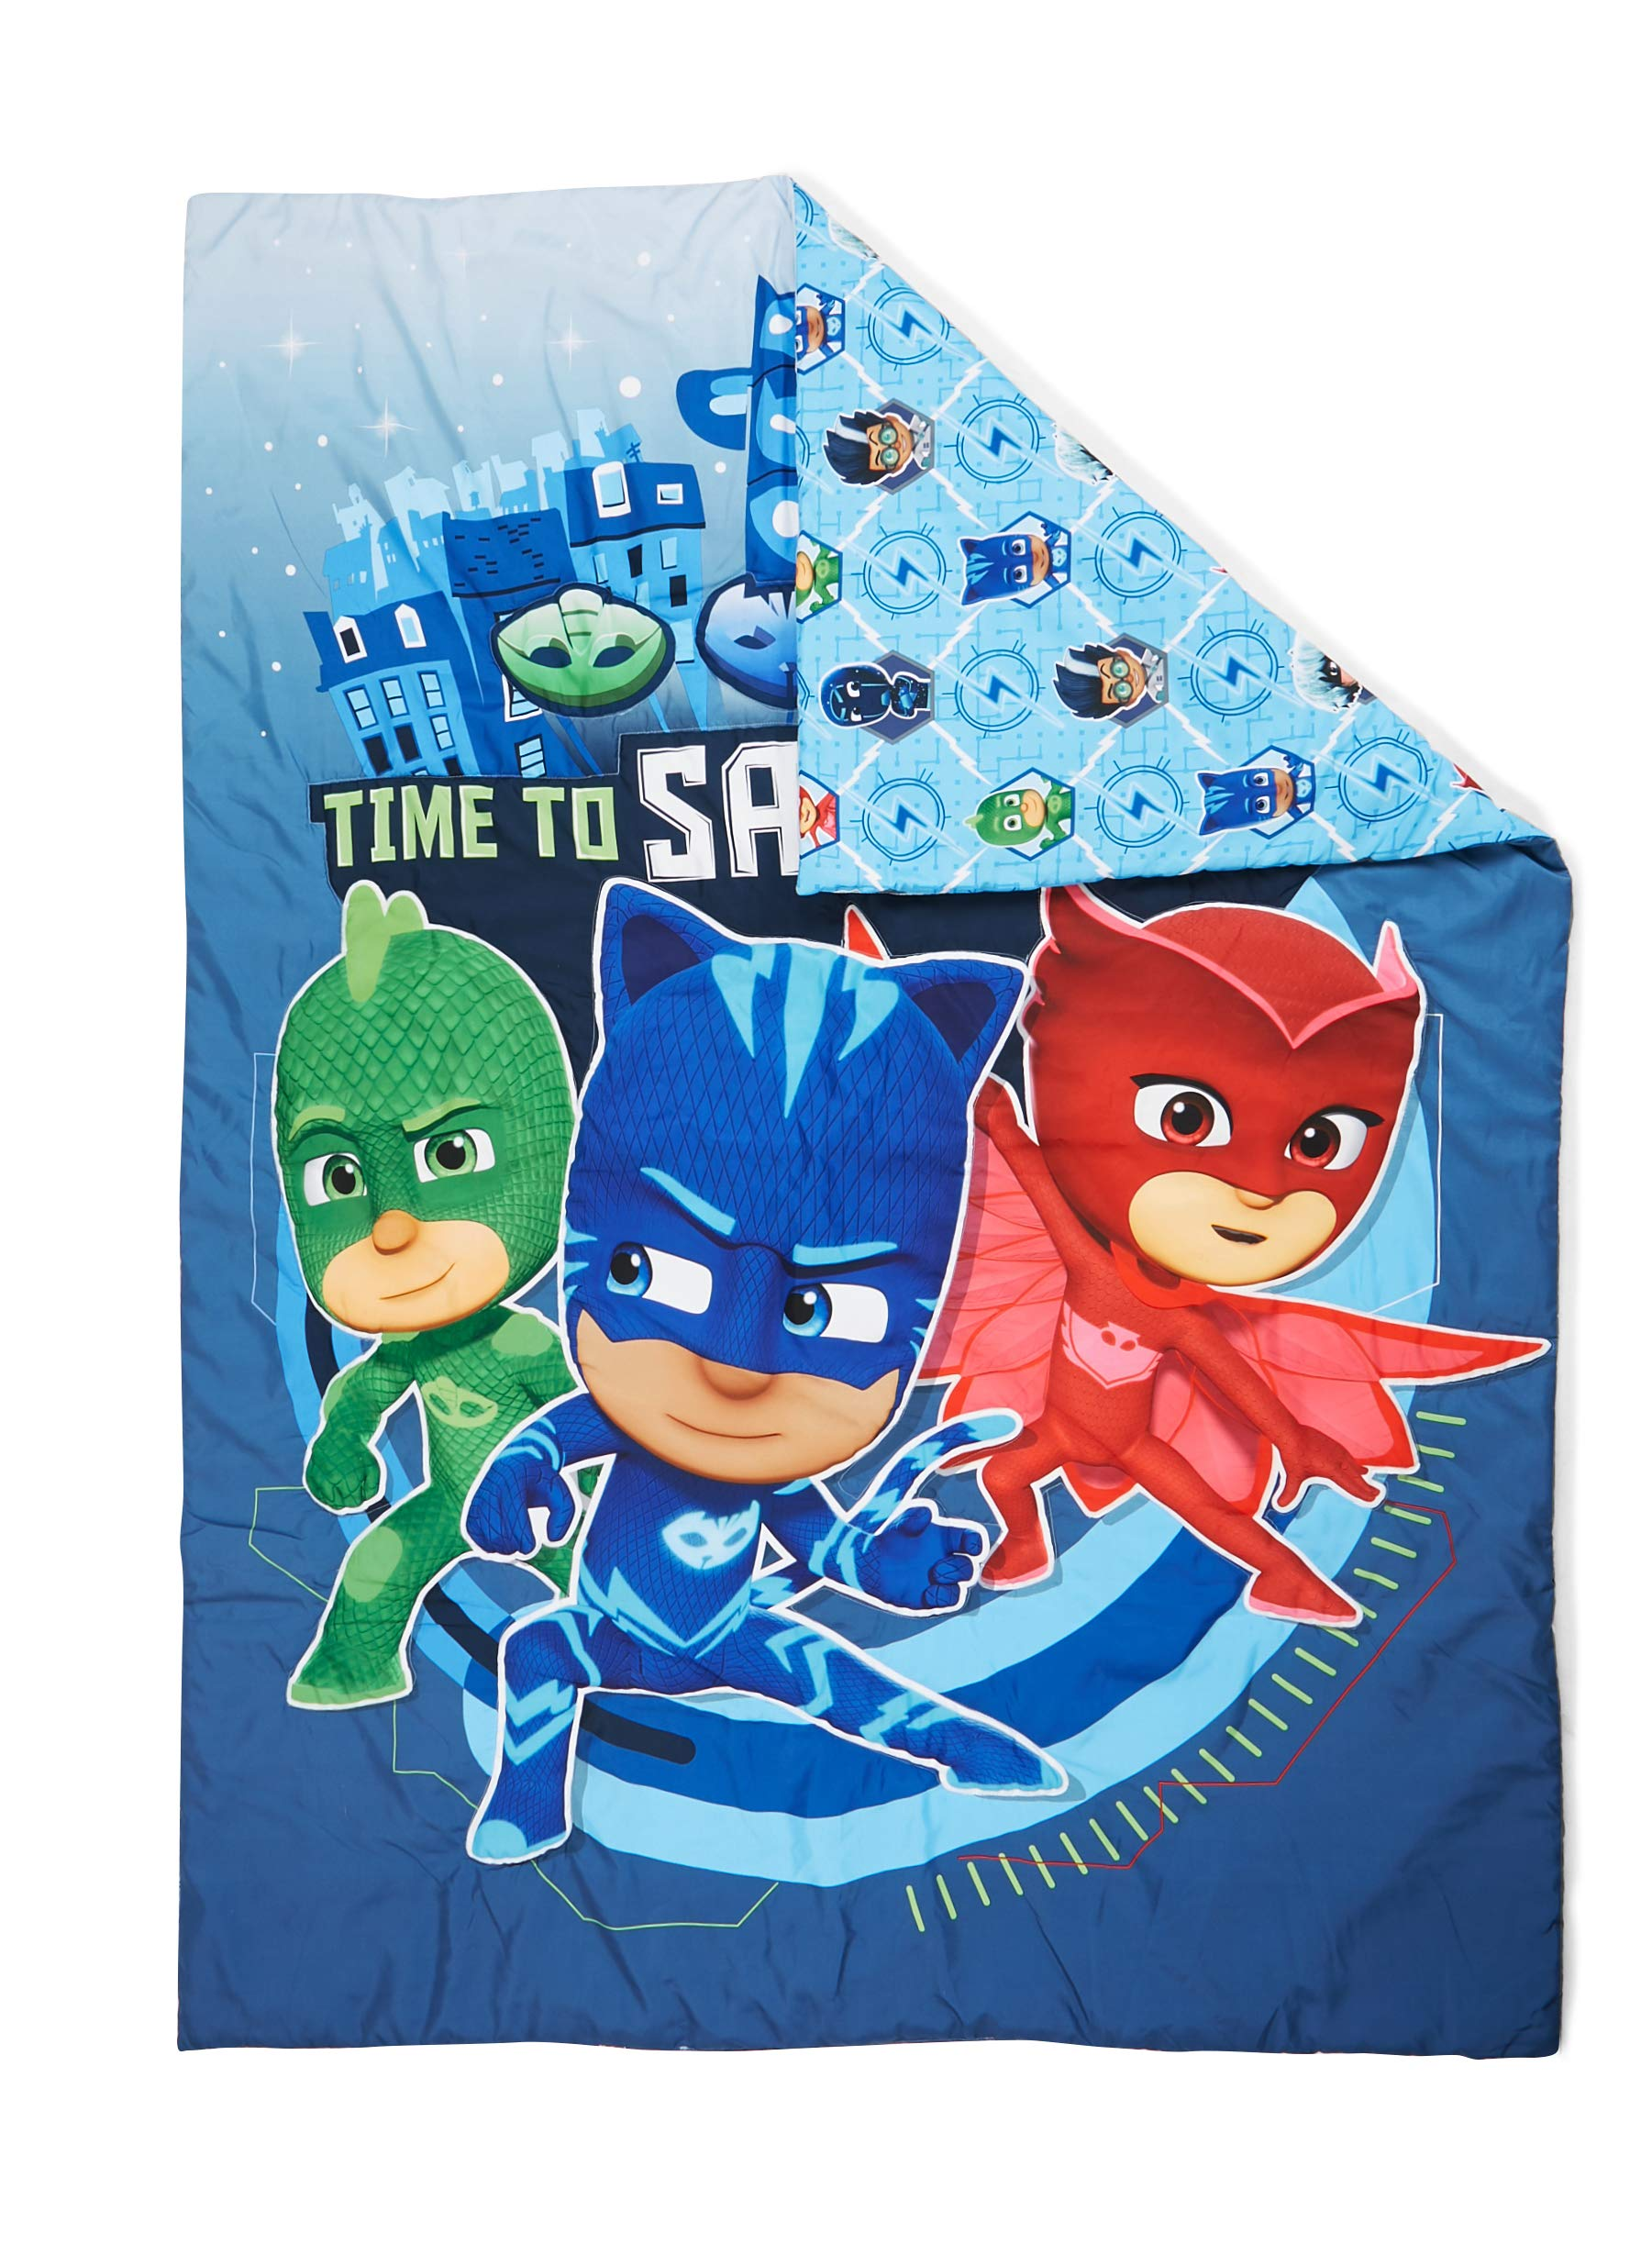 PJ Masks Time to Save The Day Toddler Bed Comforter, Blue by PJ Masks